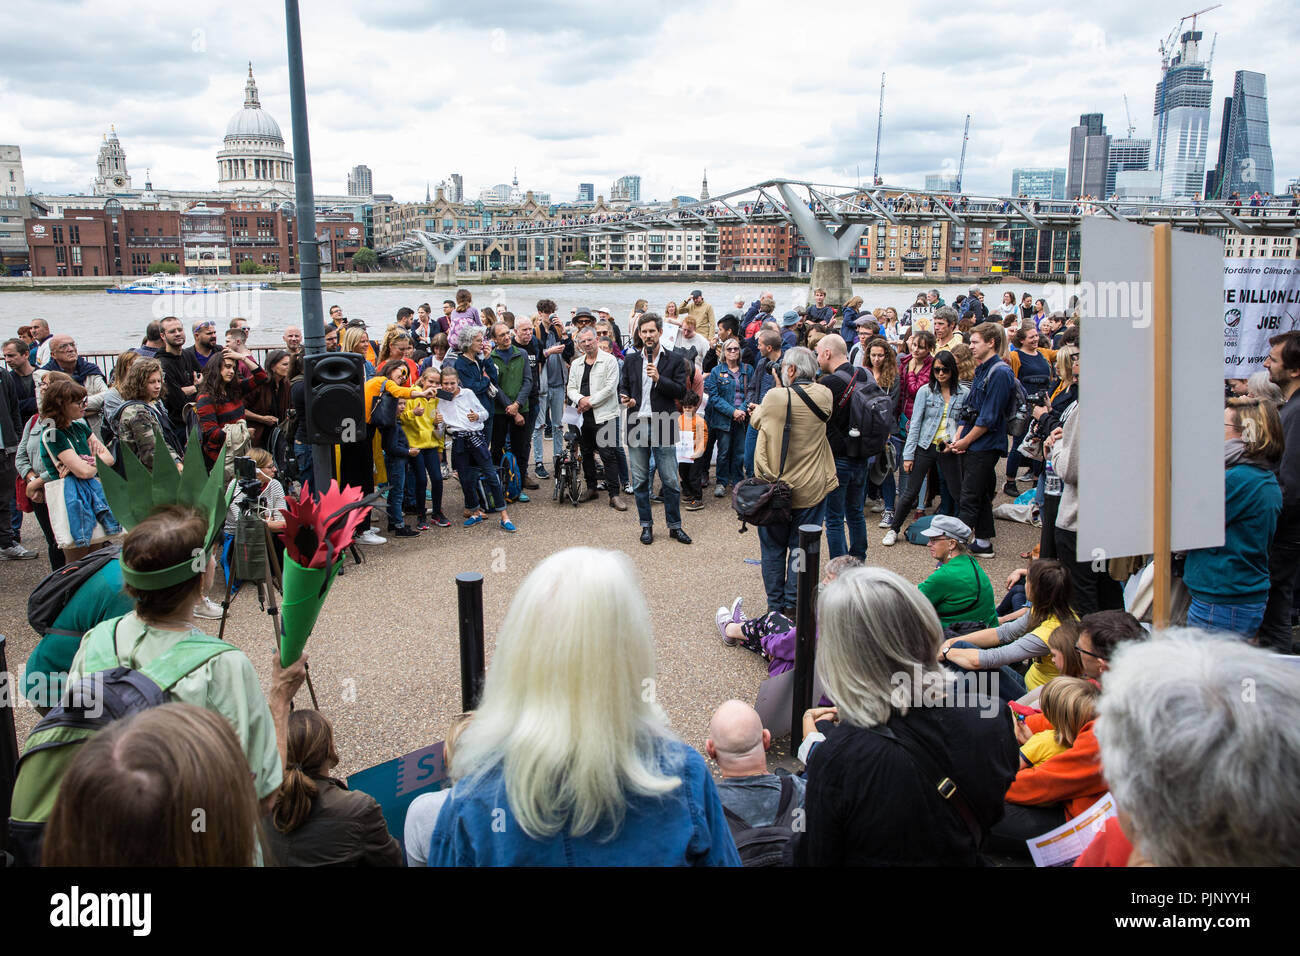 London, UK. 8th Sep, 2018. Environmental campaigners hold a rally outside Tate Modern in support of Rise For Climate, a global day of action involving hundreds of rallies in cities and towns around the world to highlight climate change and call on local leaders to commit to helping the world reach the goals of the Paris Climate Agreement. Credit: Mark Kerrison/Alamy Live News - Stock Image